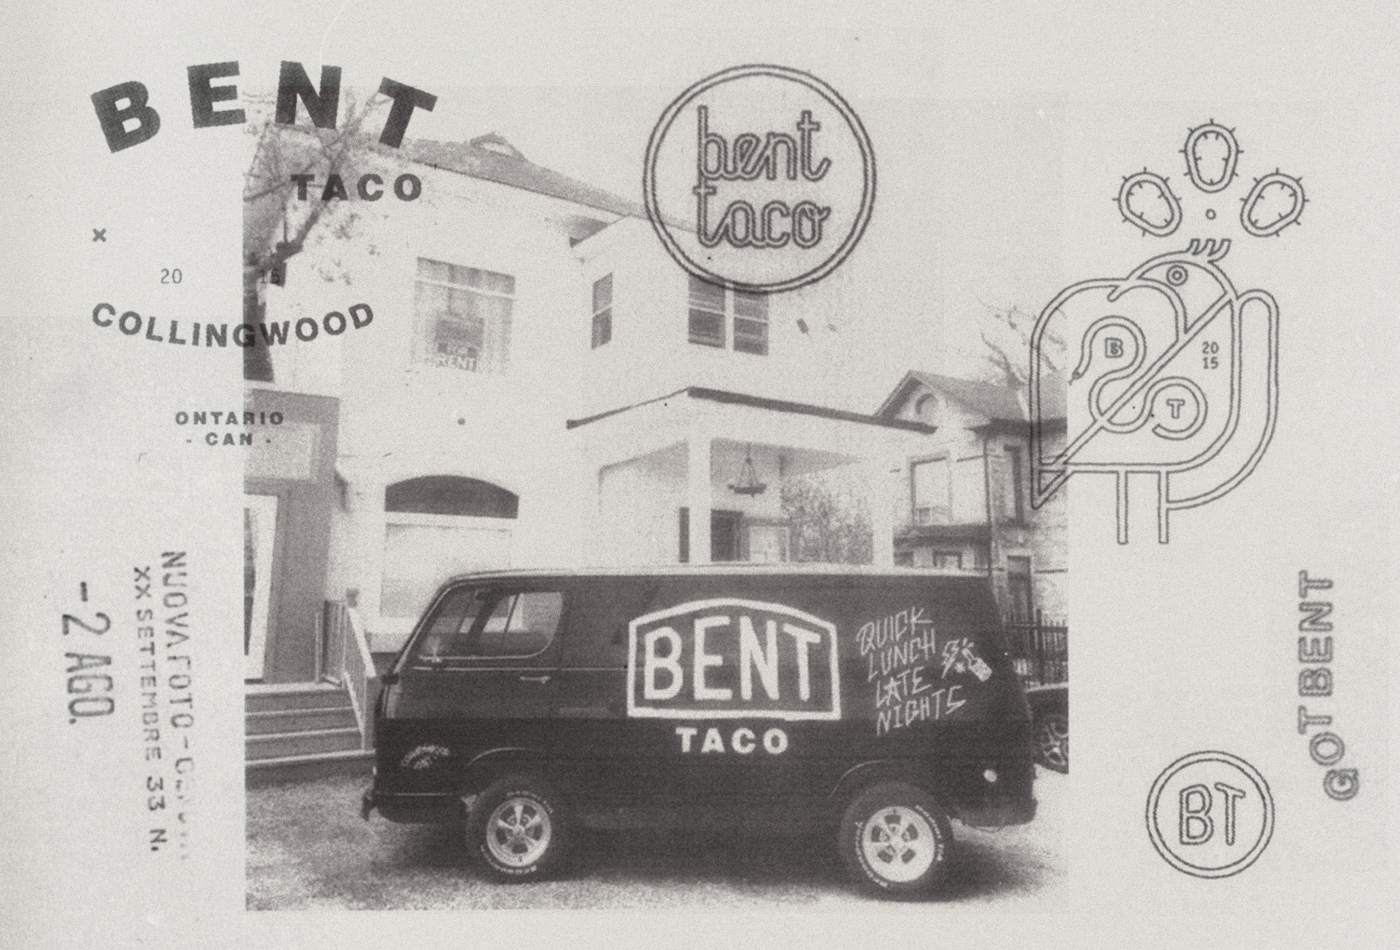 benttaco-tacos-bent-shell-bent-vacaliebres-collingwood-branding-art-direction